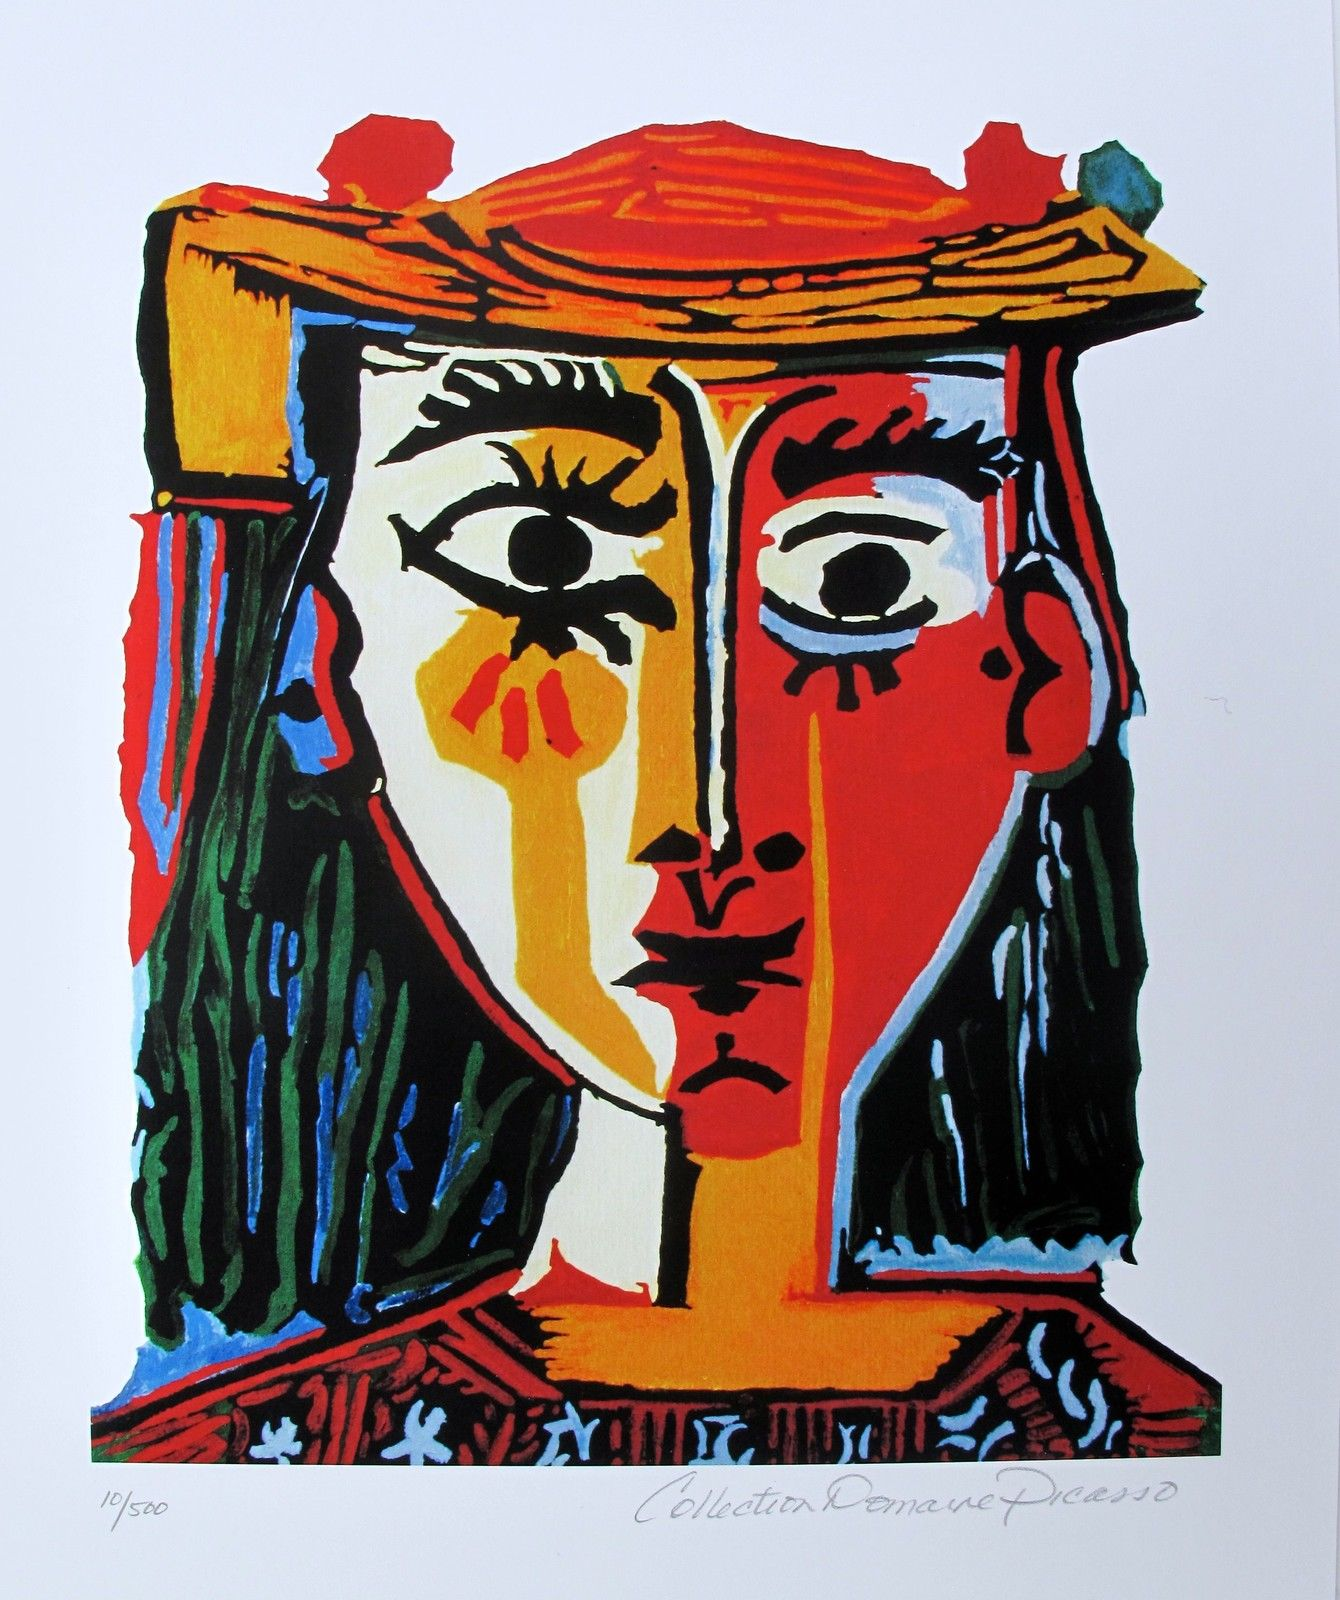 Pablo Picasso BUST OF A WOMAN Estate Signed Limited Edition Small Giclee